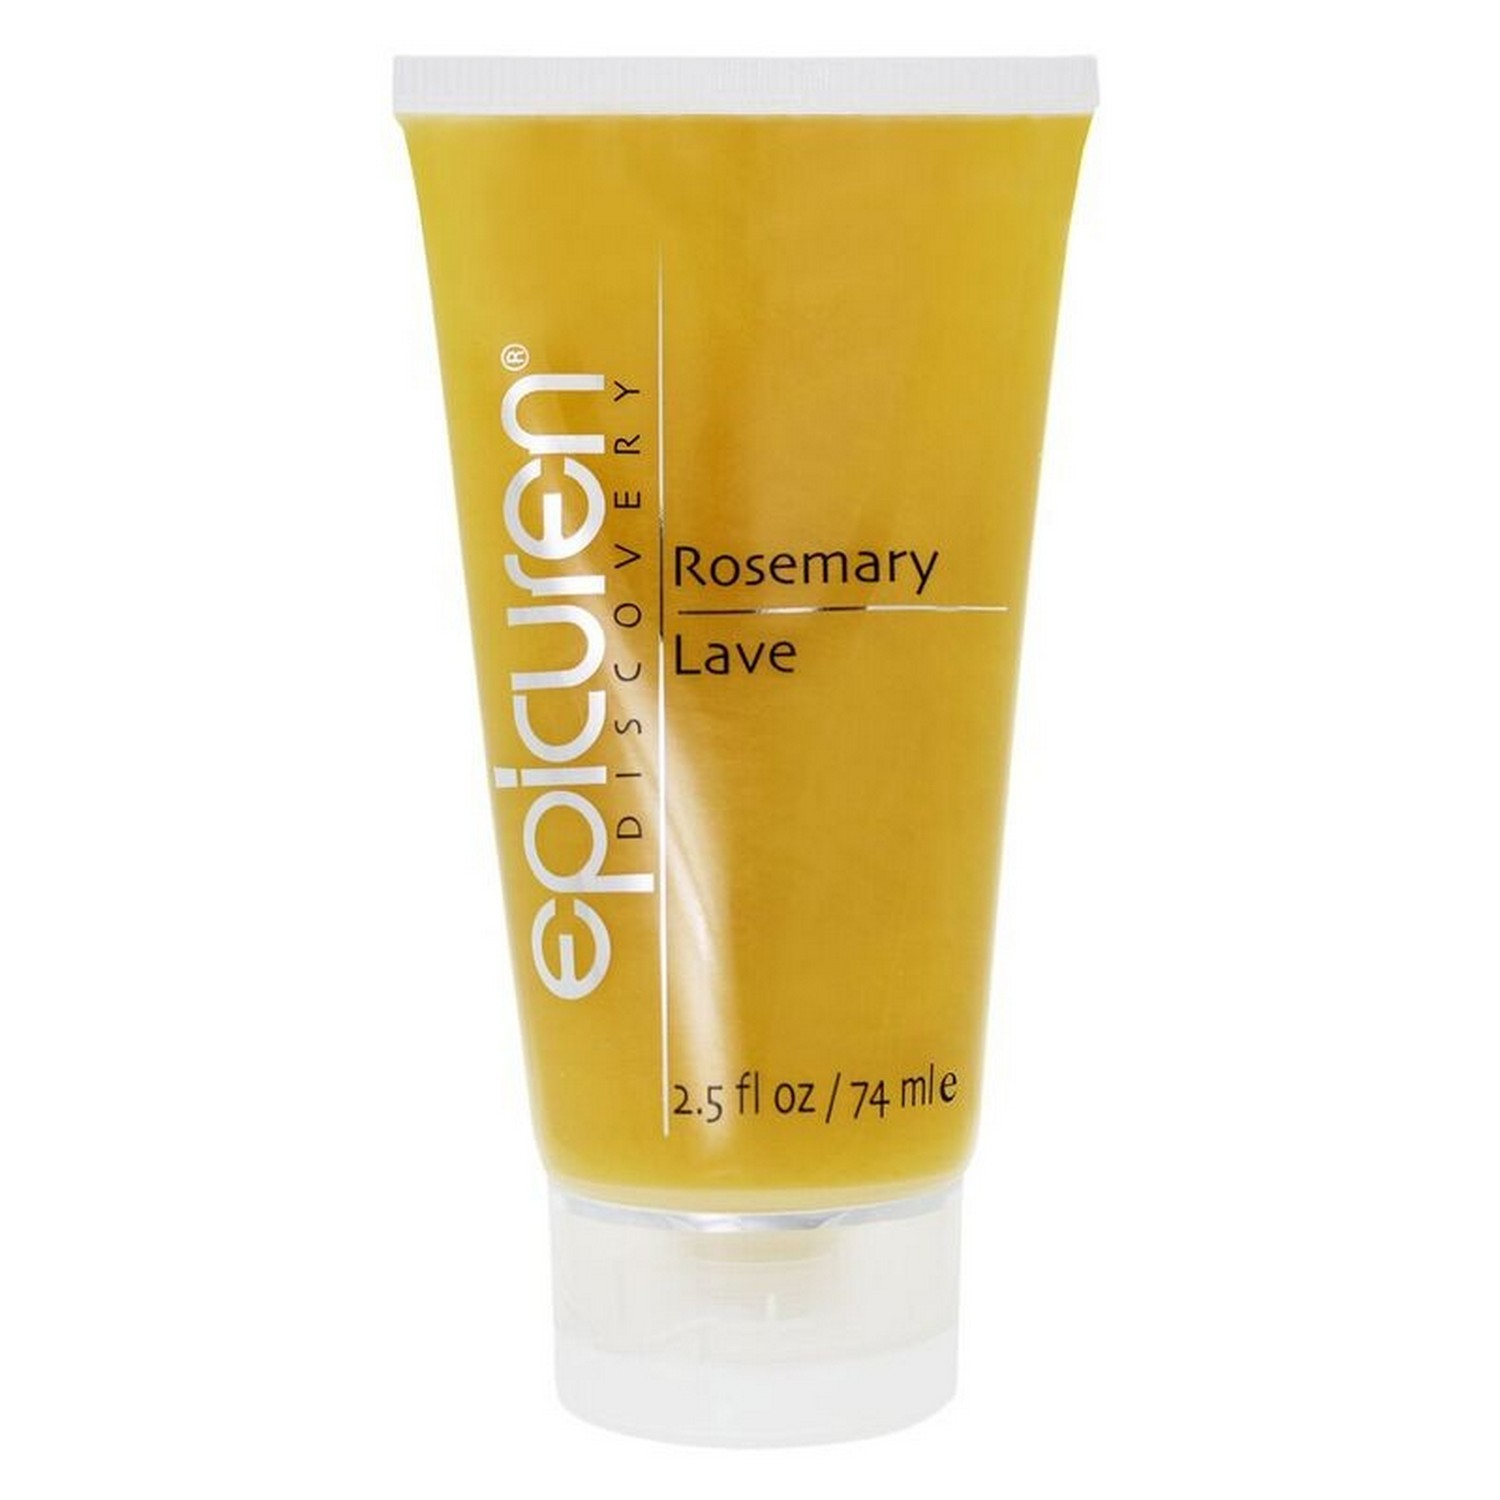 epicuren Discovery Rosemary Lave Body Cleanser (2.5 fl oz / 74 ml)